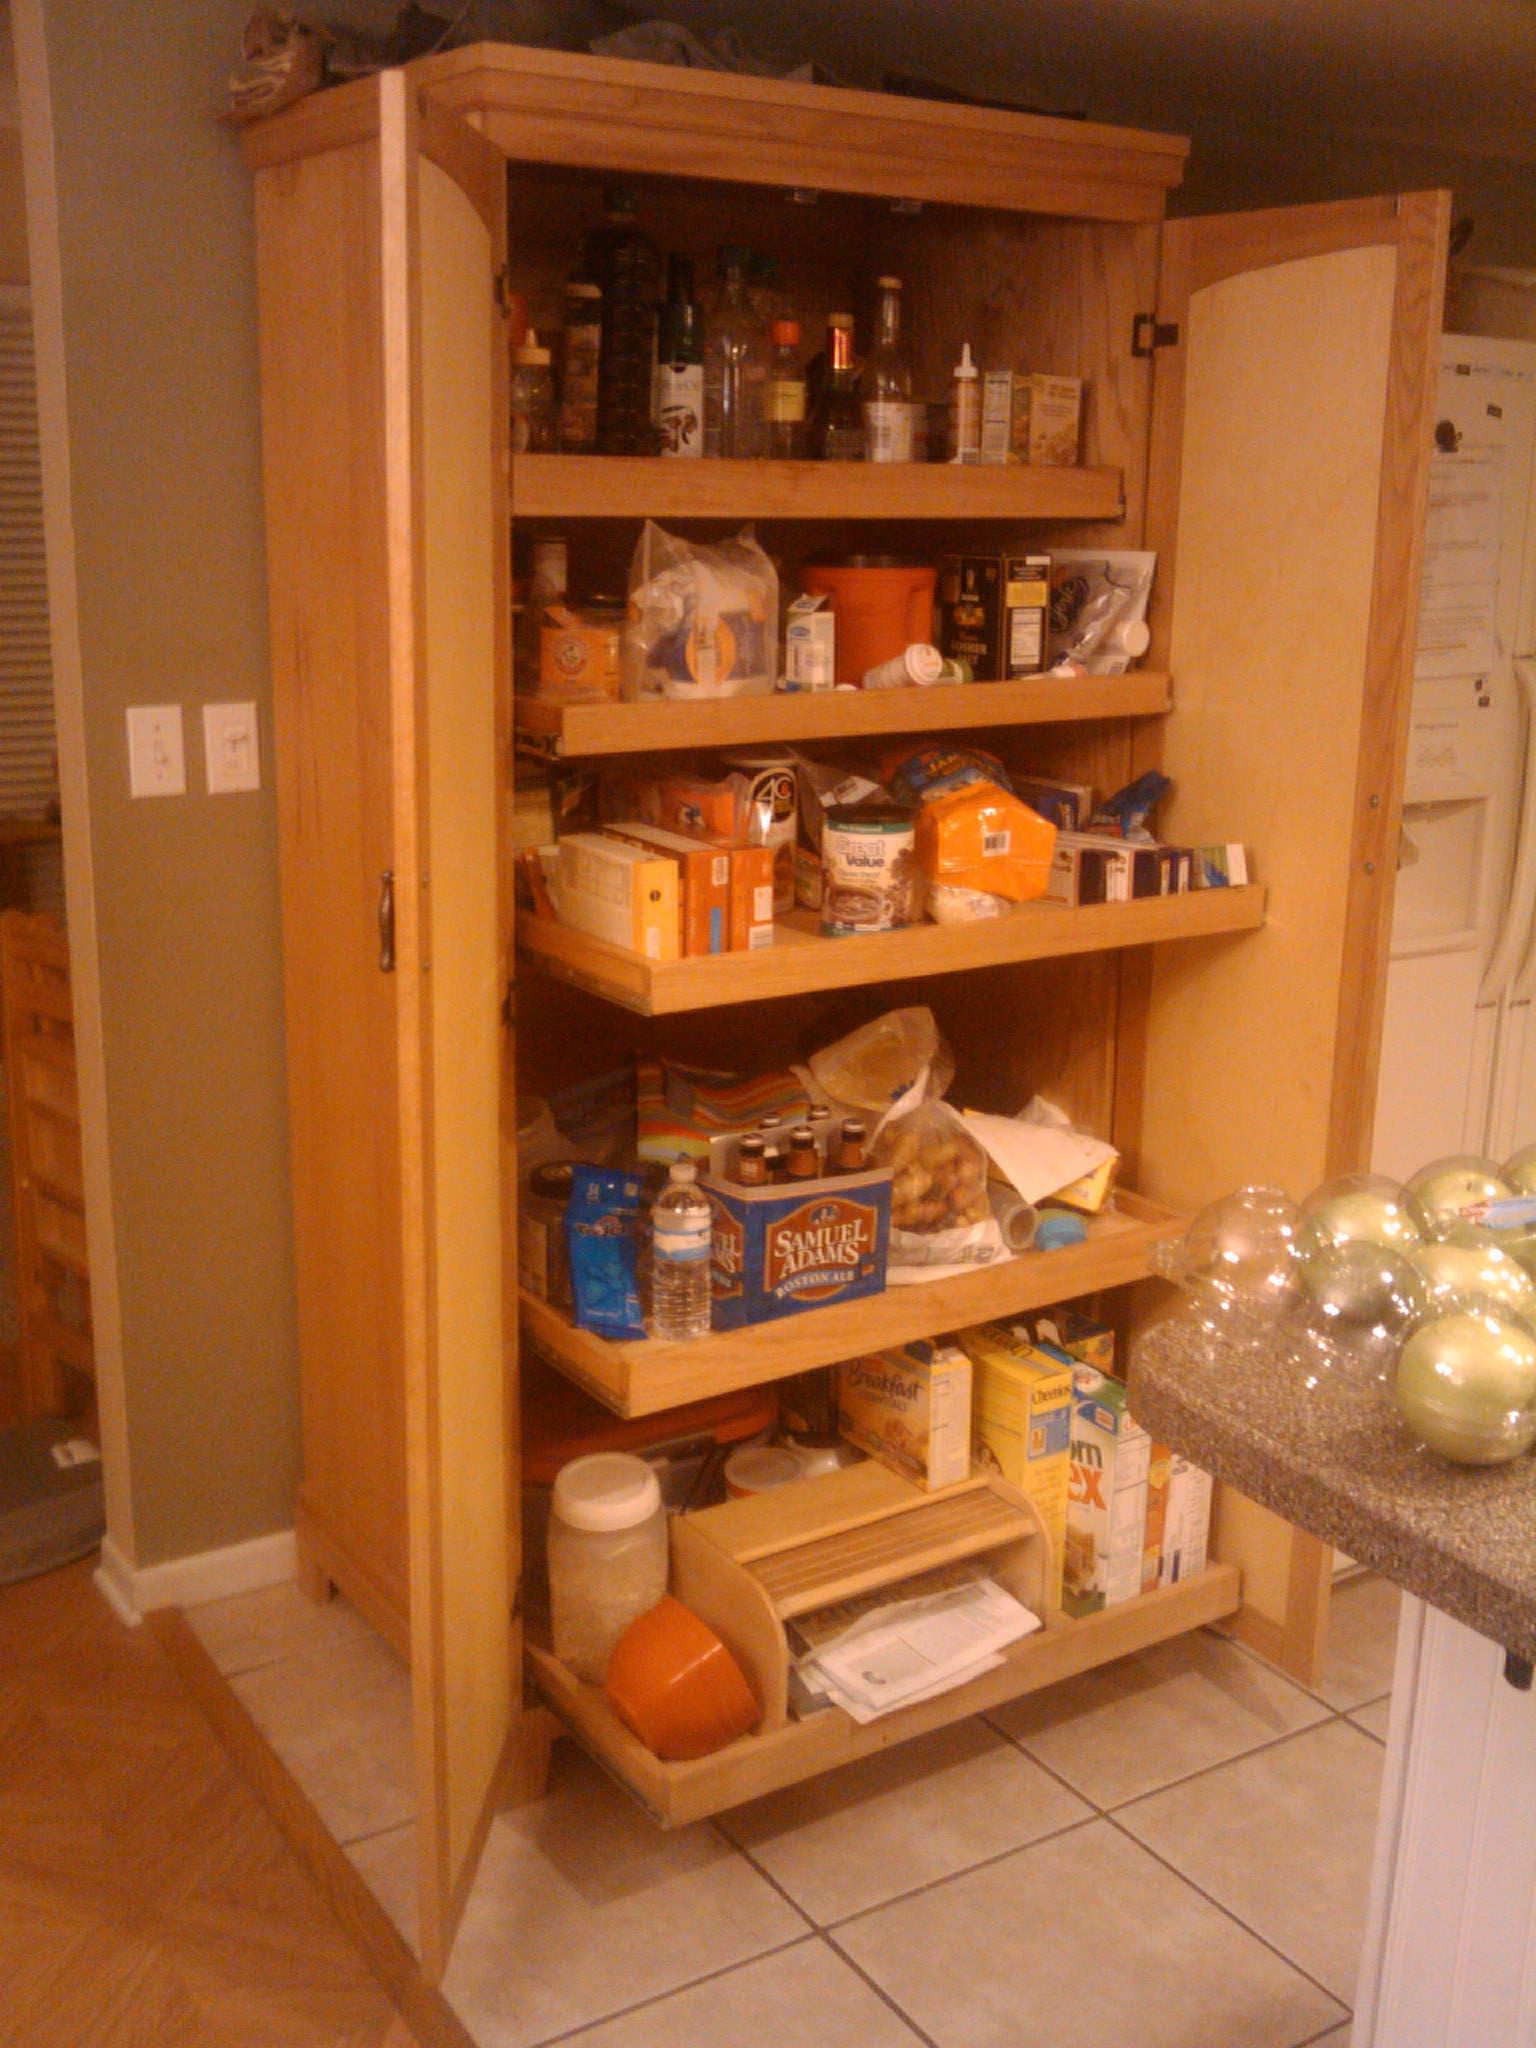 Best ideas about Free Standing Kitchen Pantry Cabinet . Save or Pin Kitchen Pantry Cabinets Freestanding with Free Standing Now.